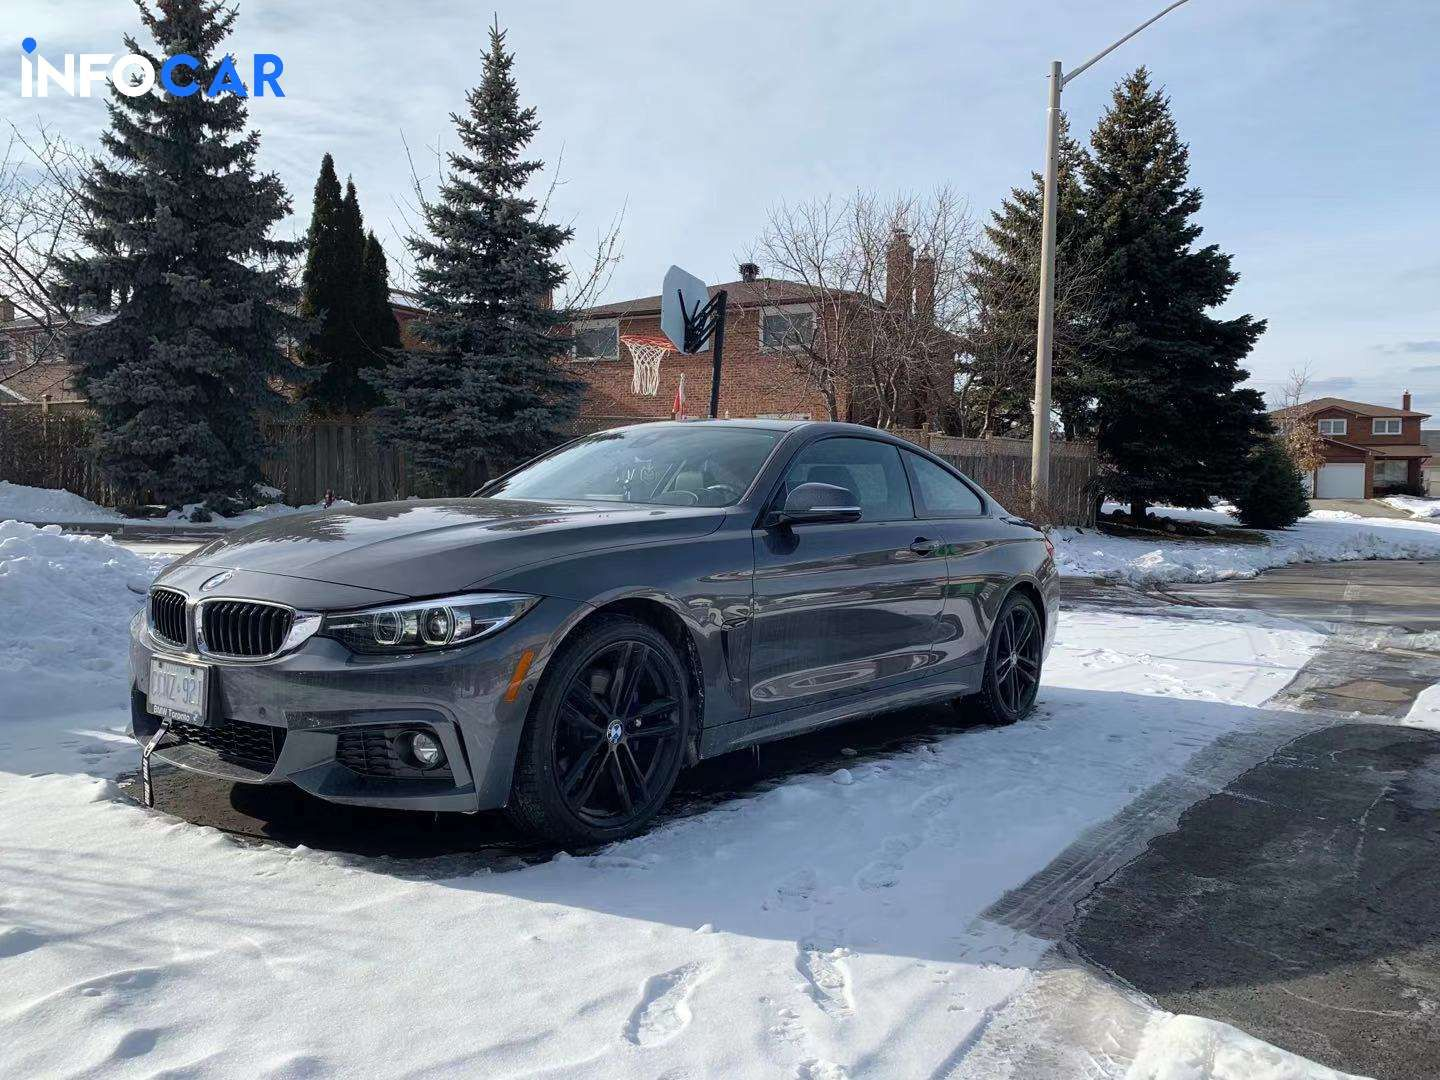 2019 BMW 4-Series 440 - INFOCAR - Toronto's Most Comprehensive New and Used Auto Trading Platform